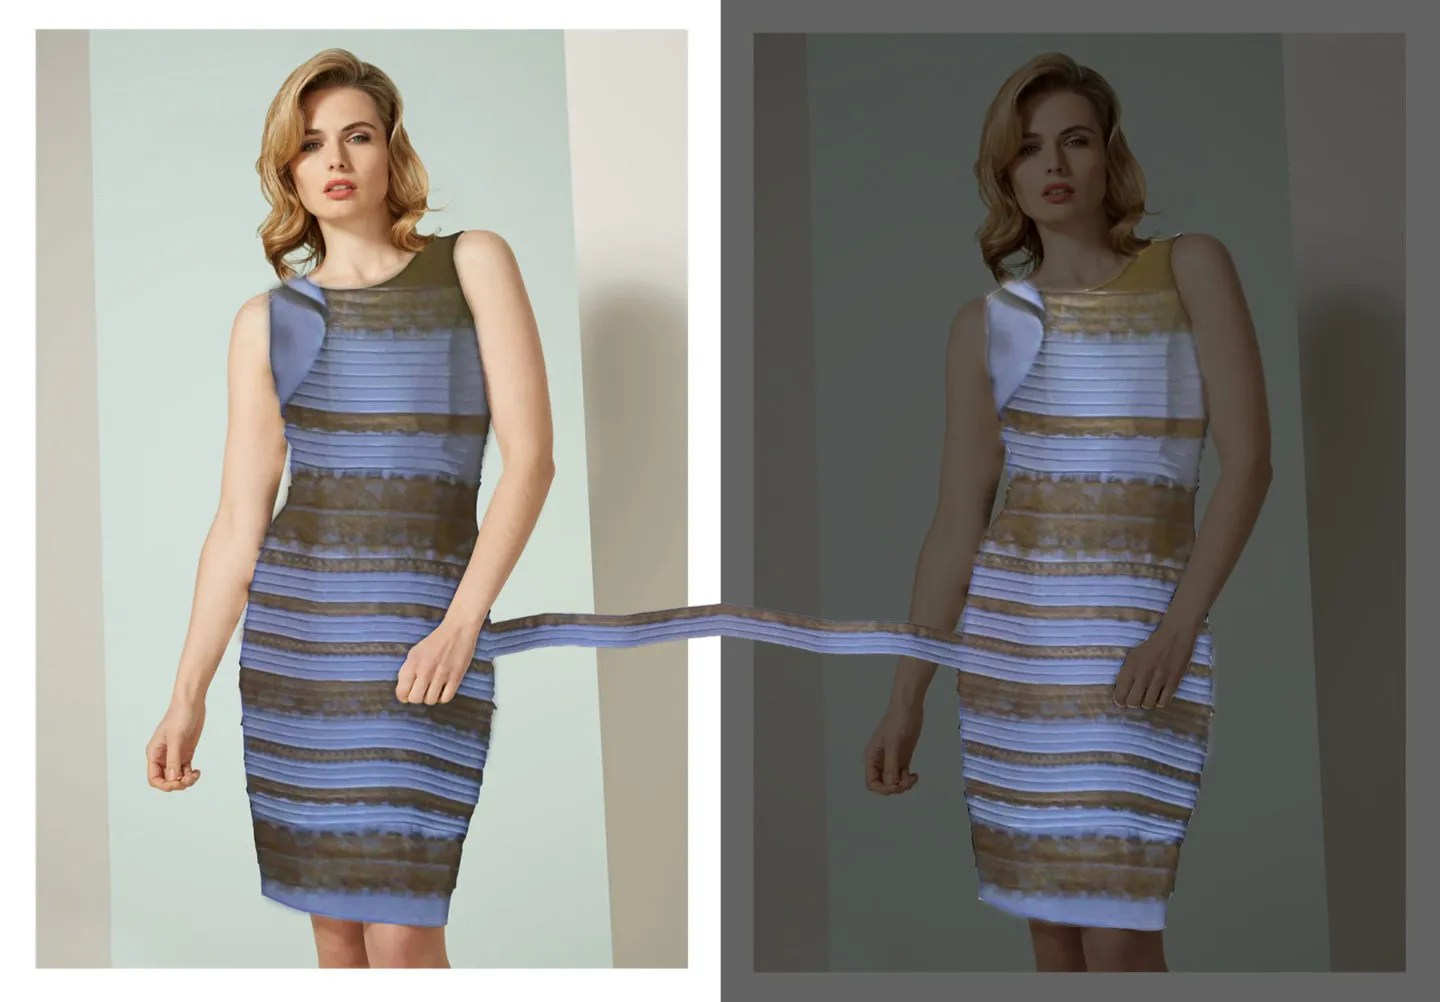 dd64b3aa4ef5d How does a black and blue dress sometimes appear white and gold ...